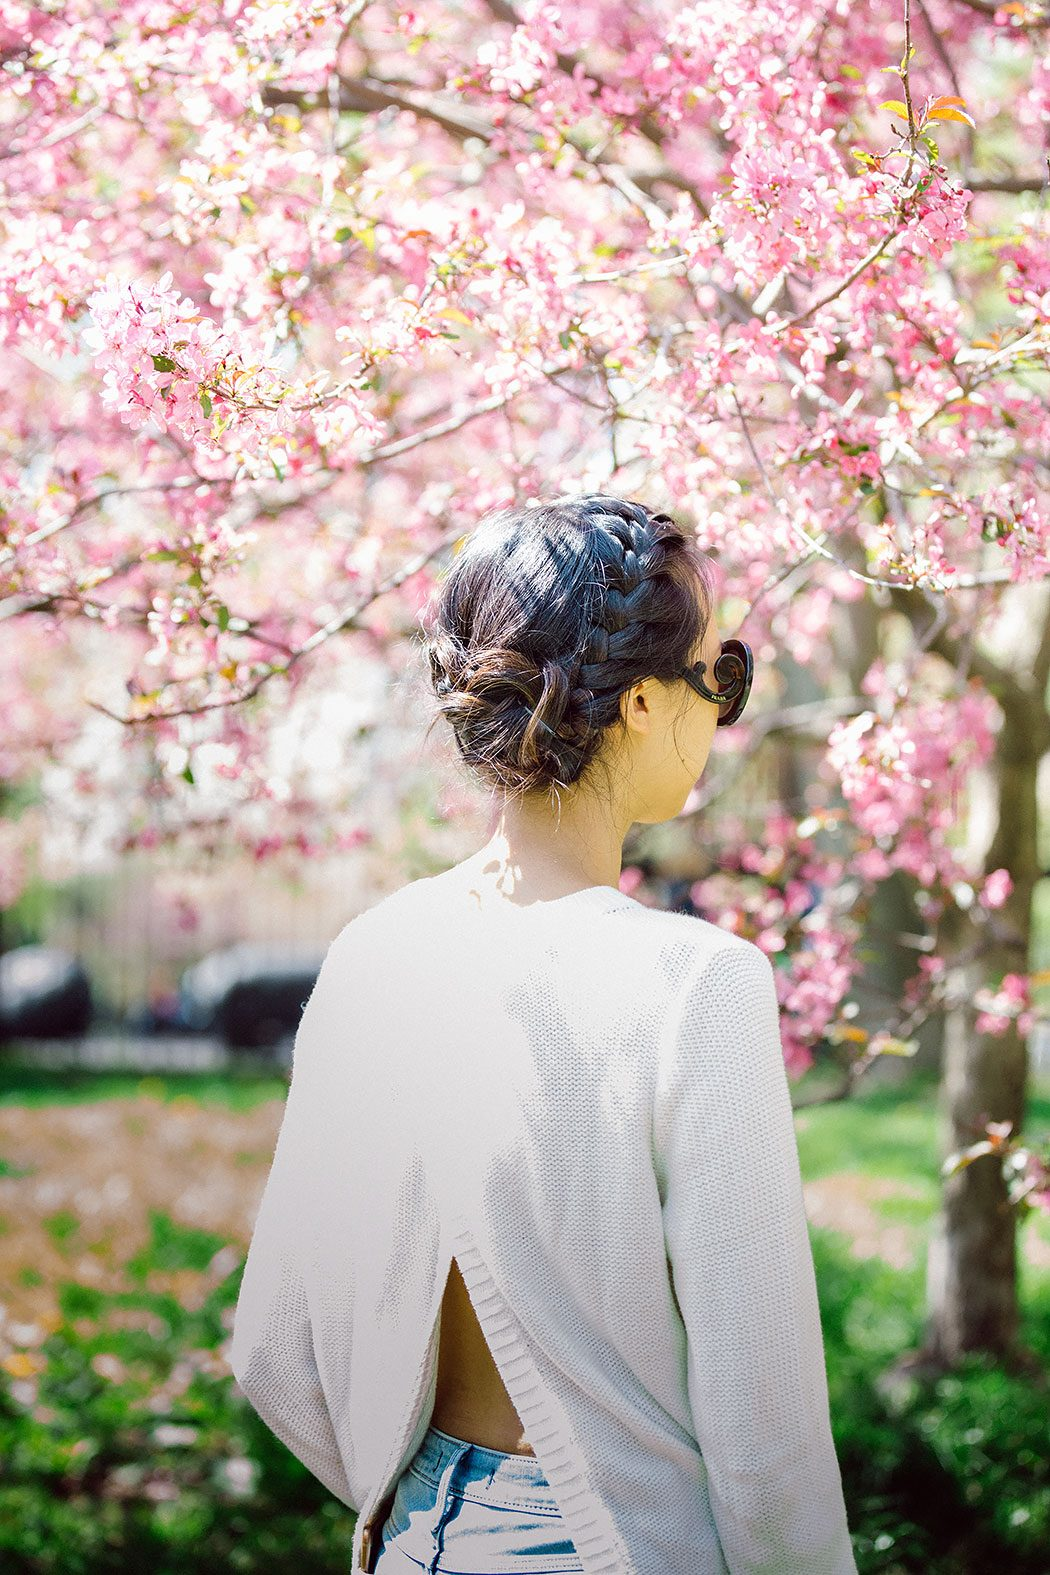 new york city central park bethesda terrace cherry blossom braided updo hair style